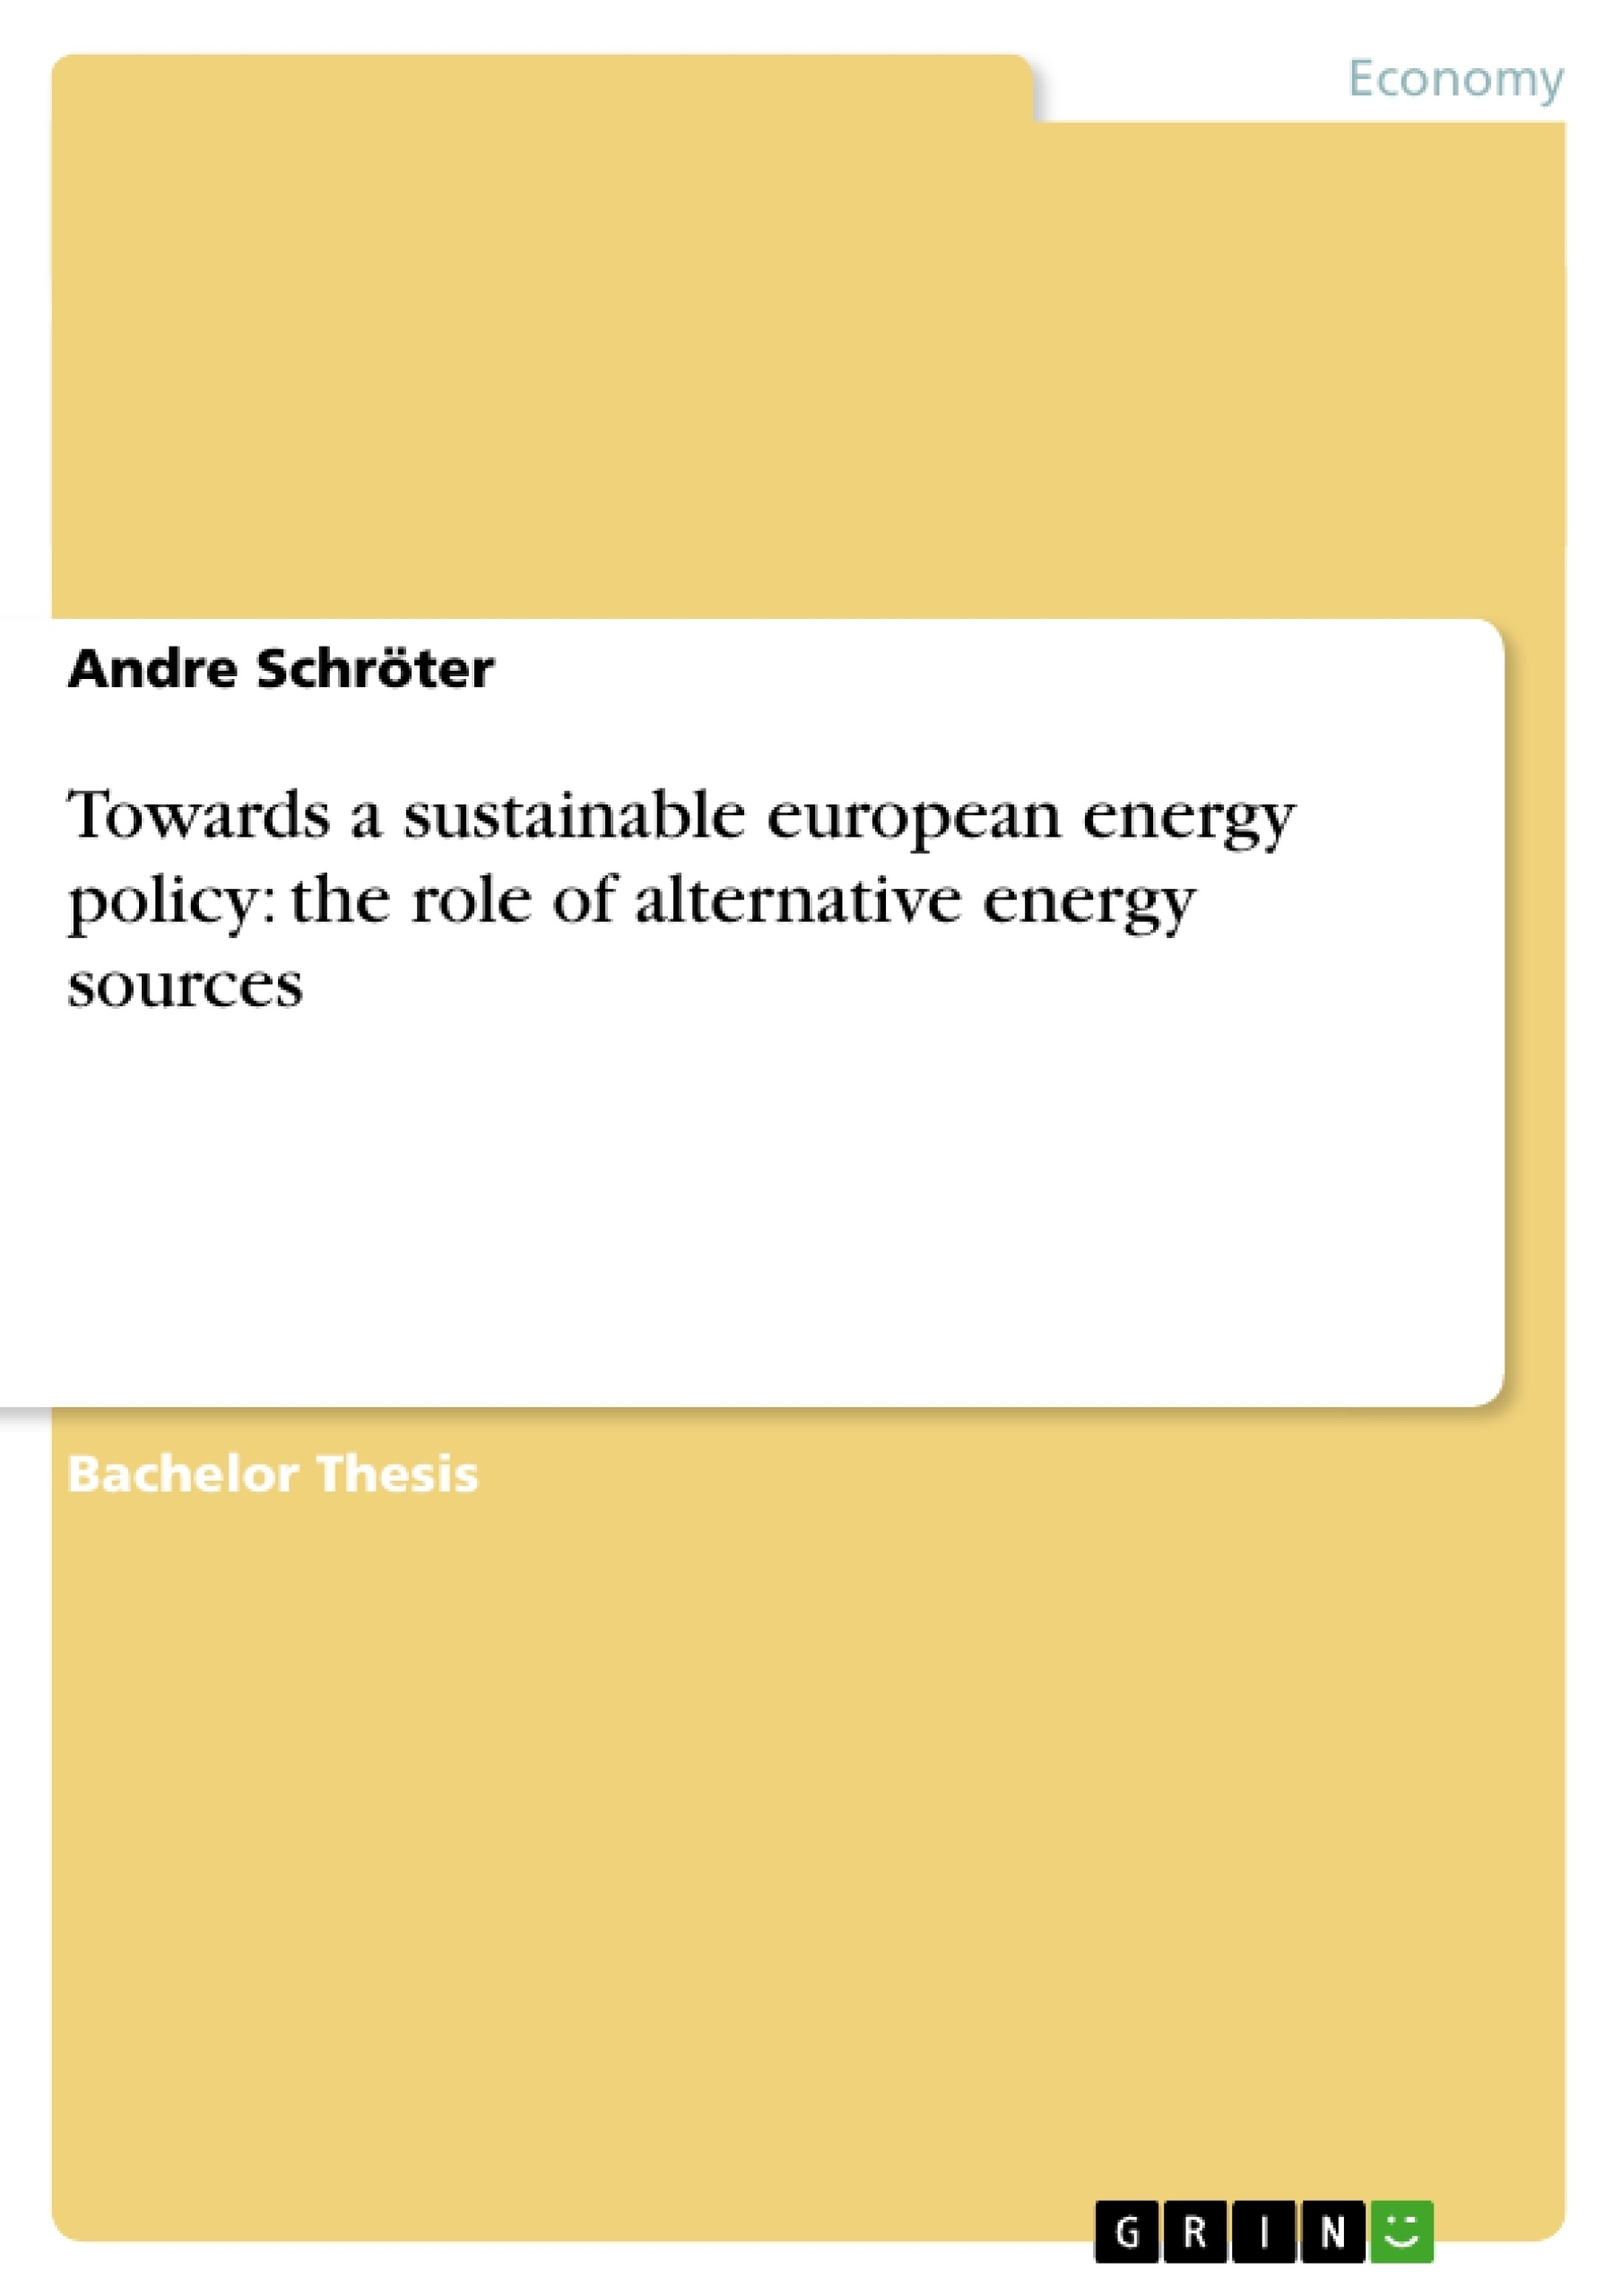 GRIN - Towards a sustainable european energy policy: the role of  alternative energy sources